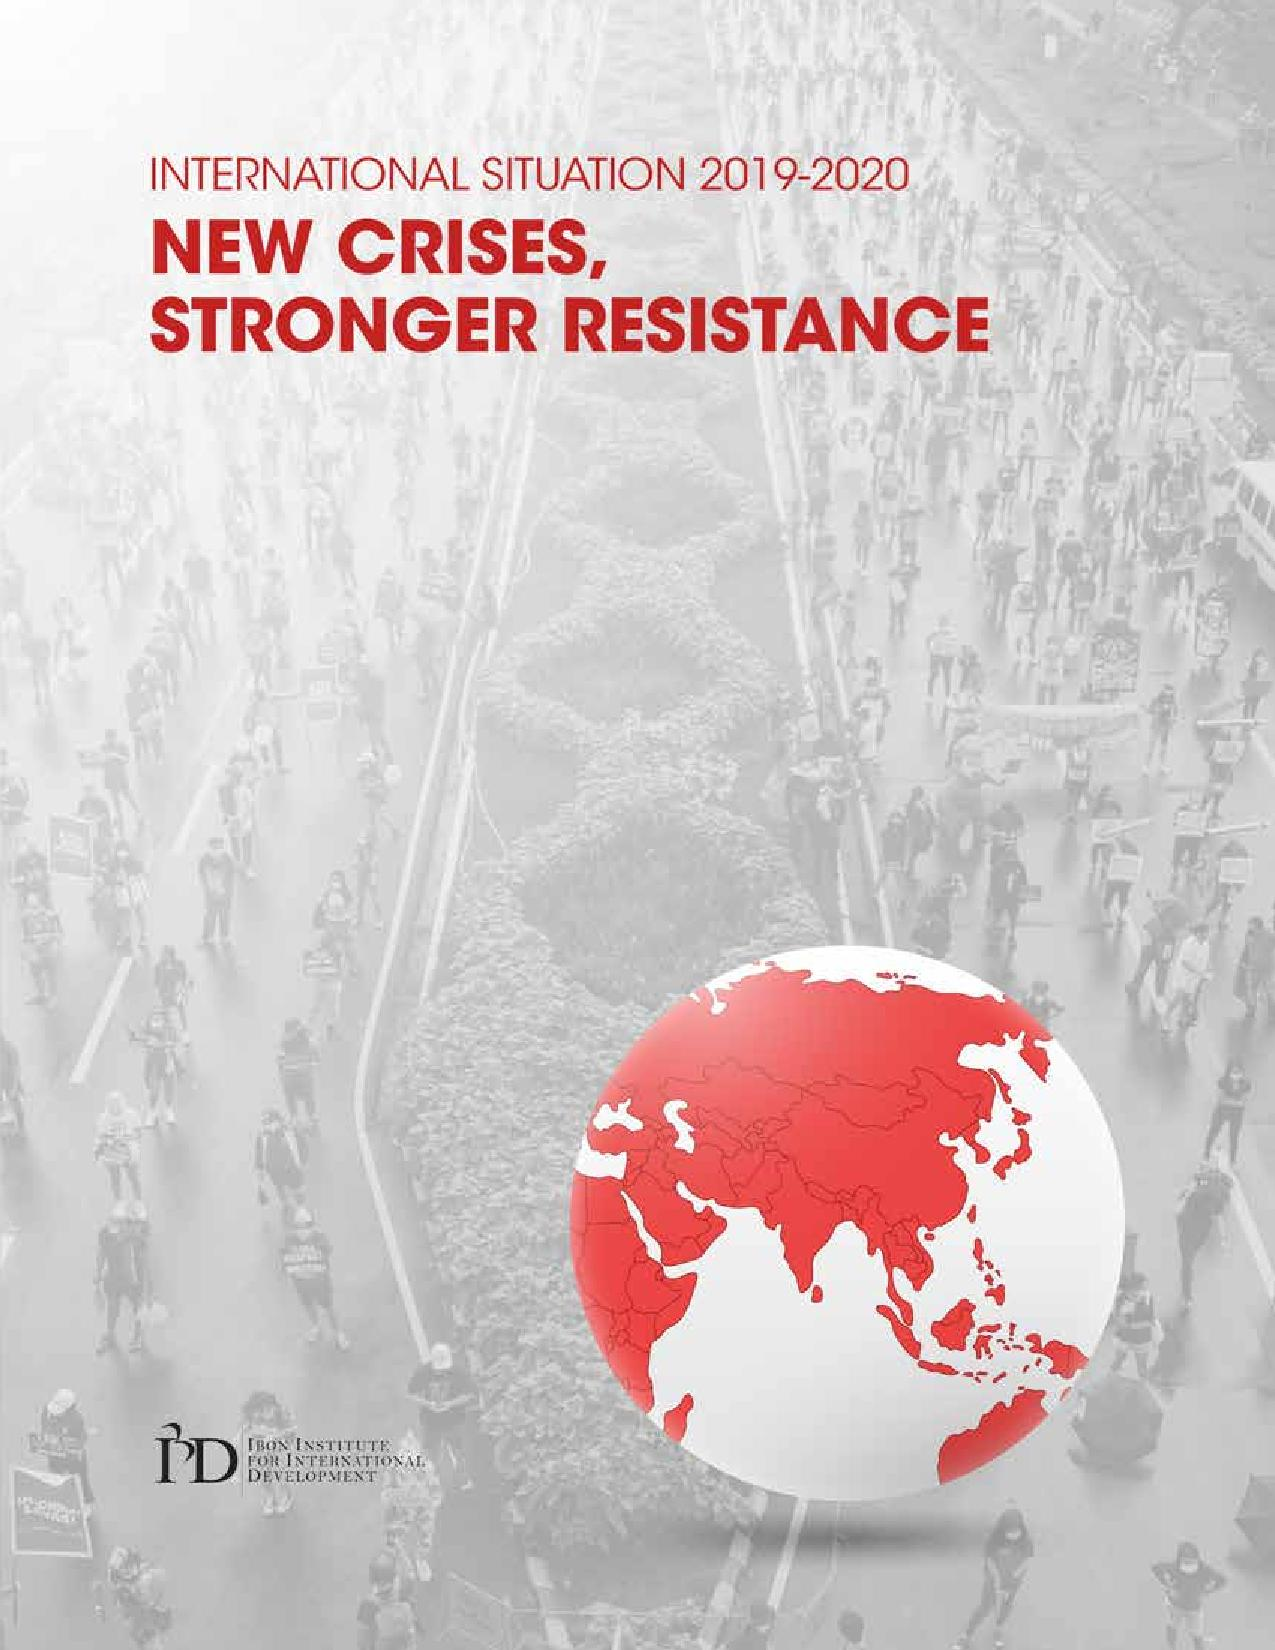 International Situation 2019-2020: New Crises, Stronger Resistance